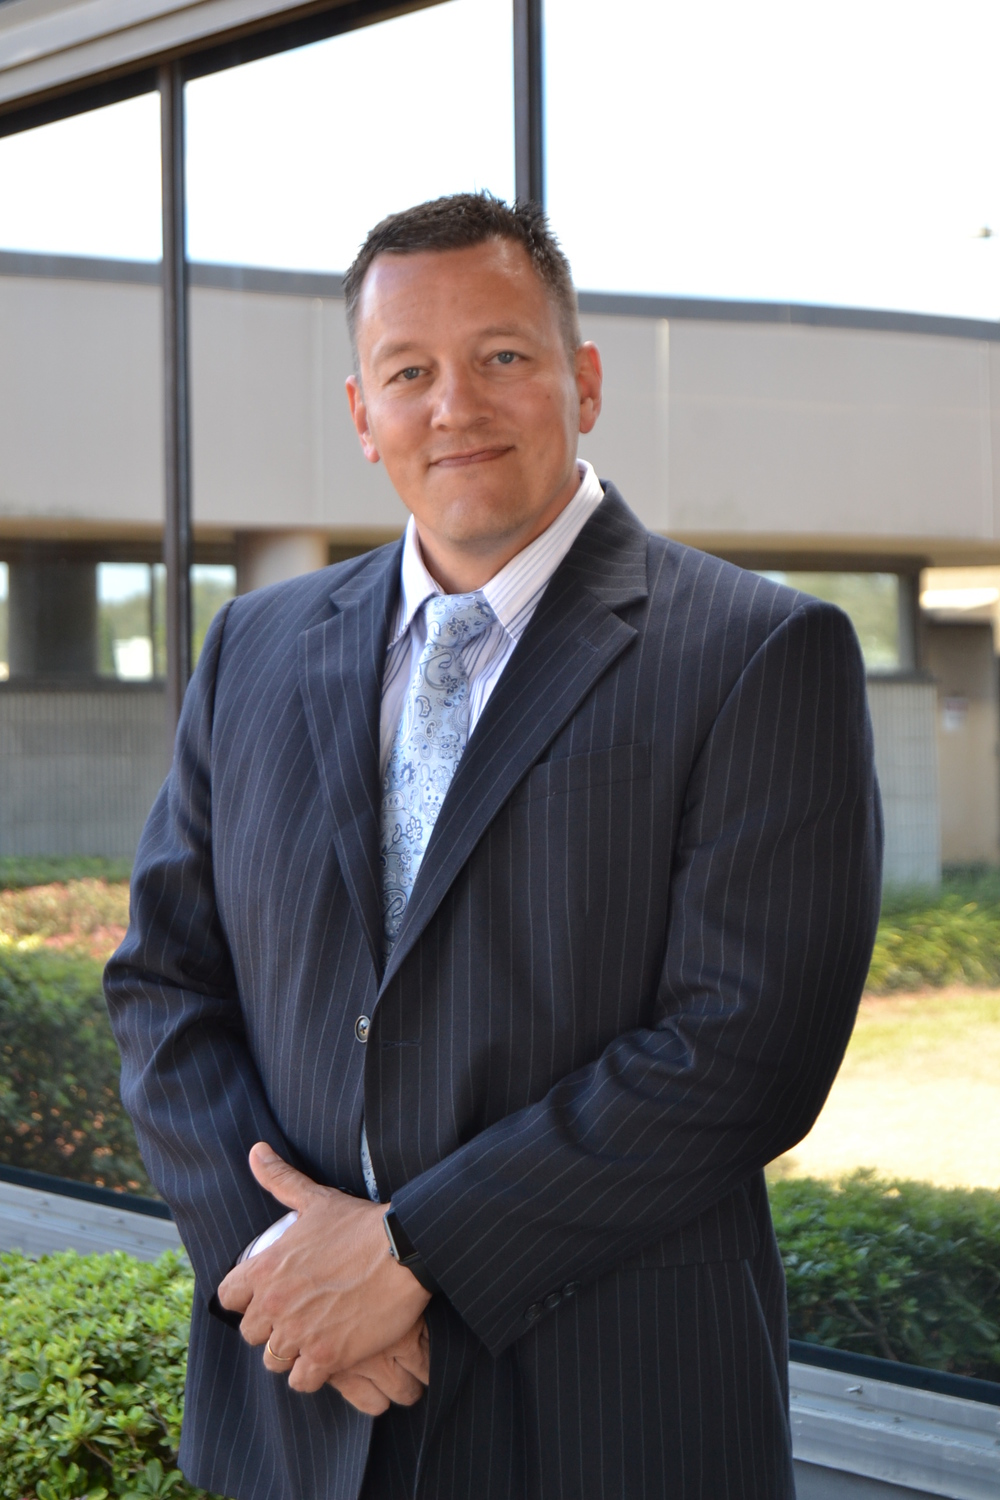 Director Paul Bloom Public Information Director pbloom@marionso.com